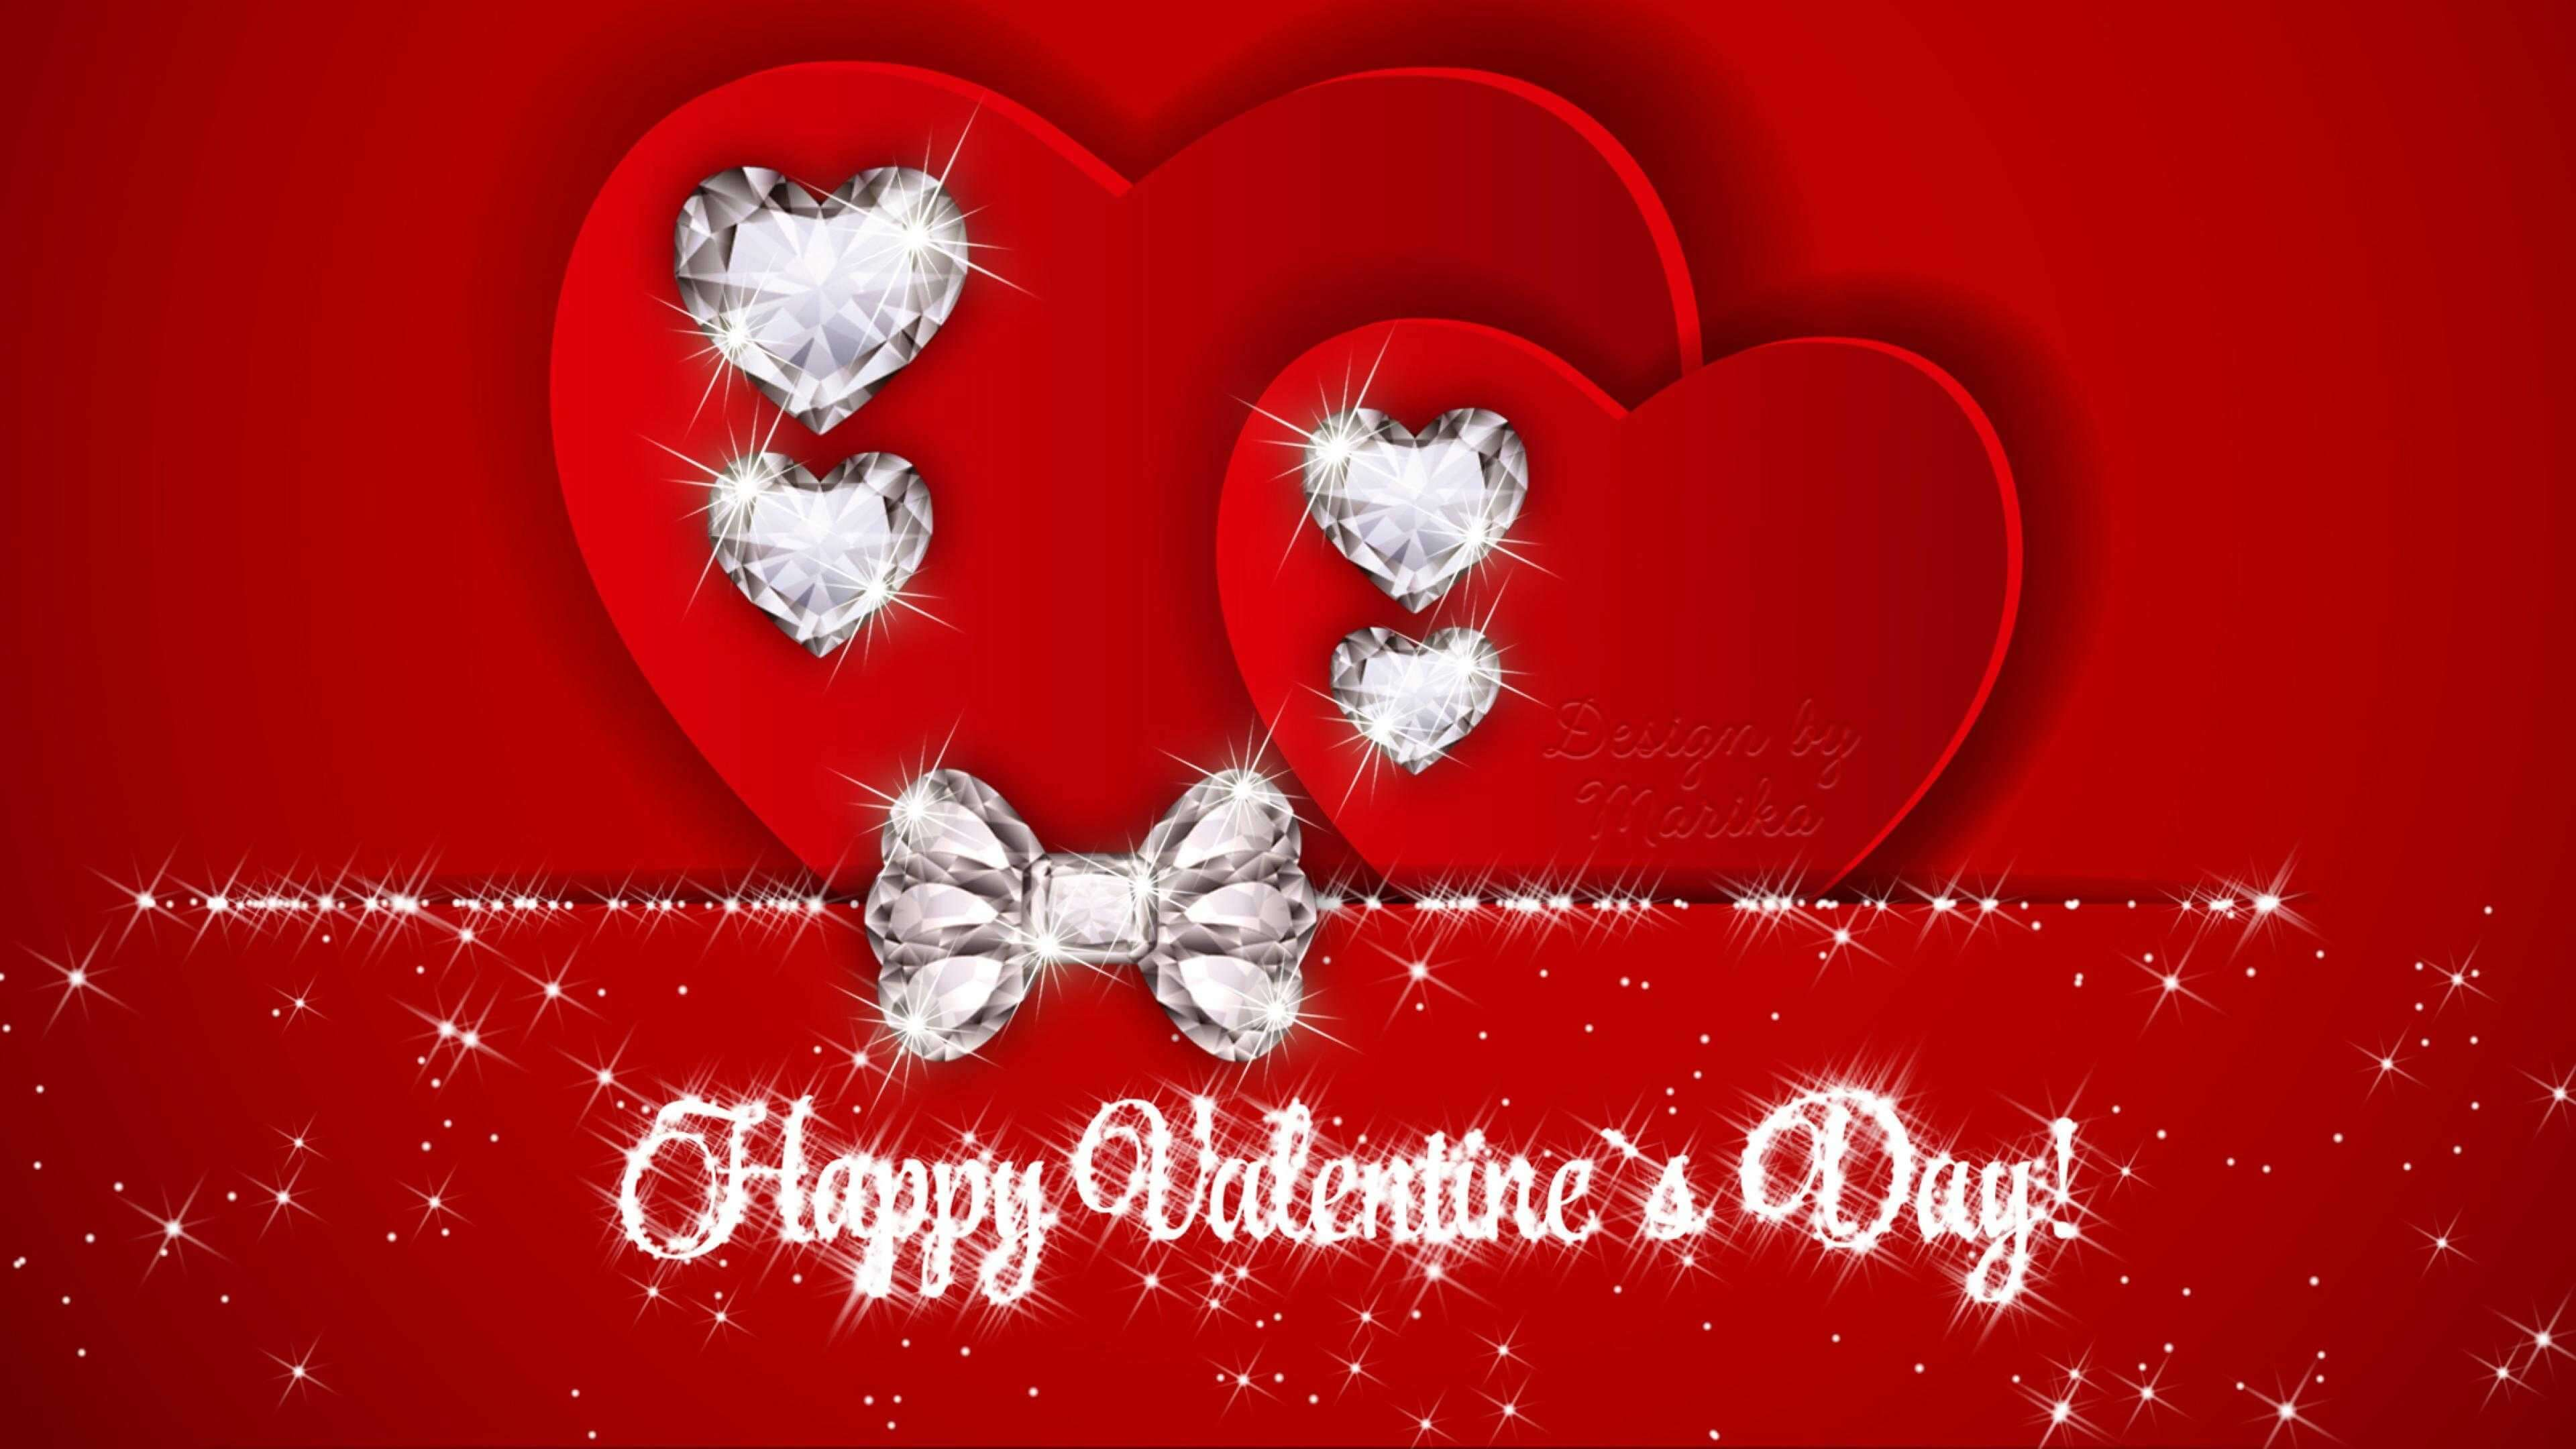 happy valentines day heart stones jewels picture image hd wallpaper